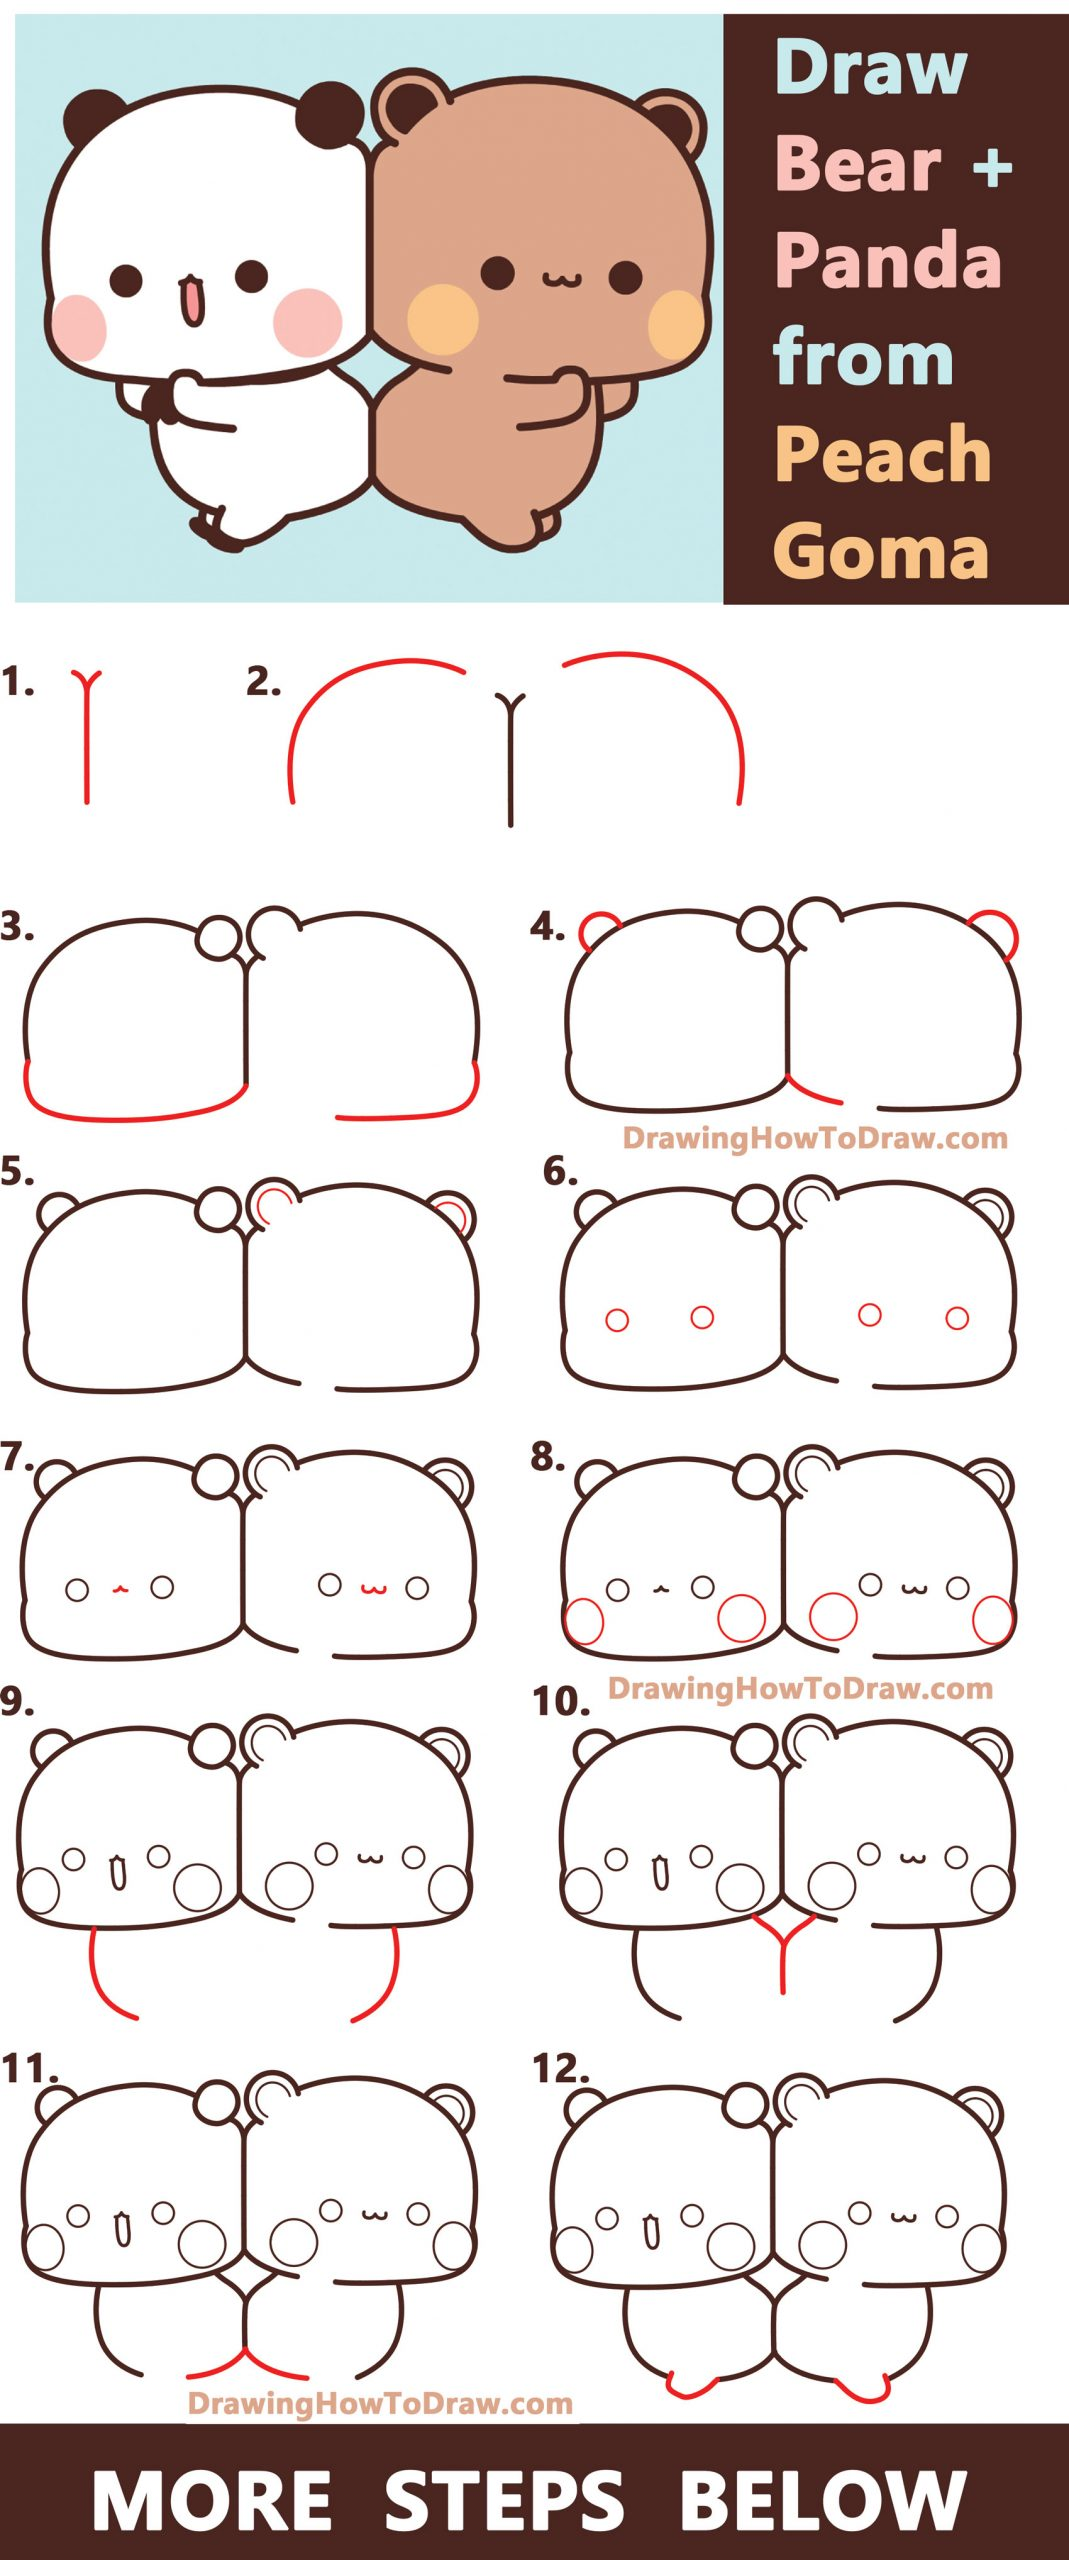 How to Draw Bear and Panda from Peach Goma (Kawaii) Easy Step by Step Drawing Tutorial